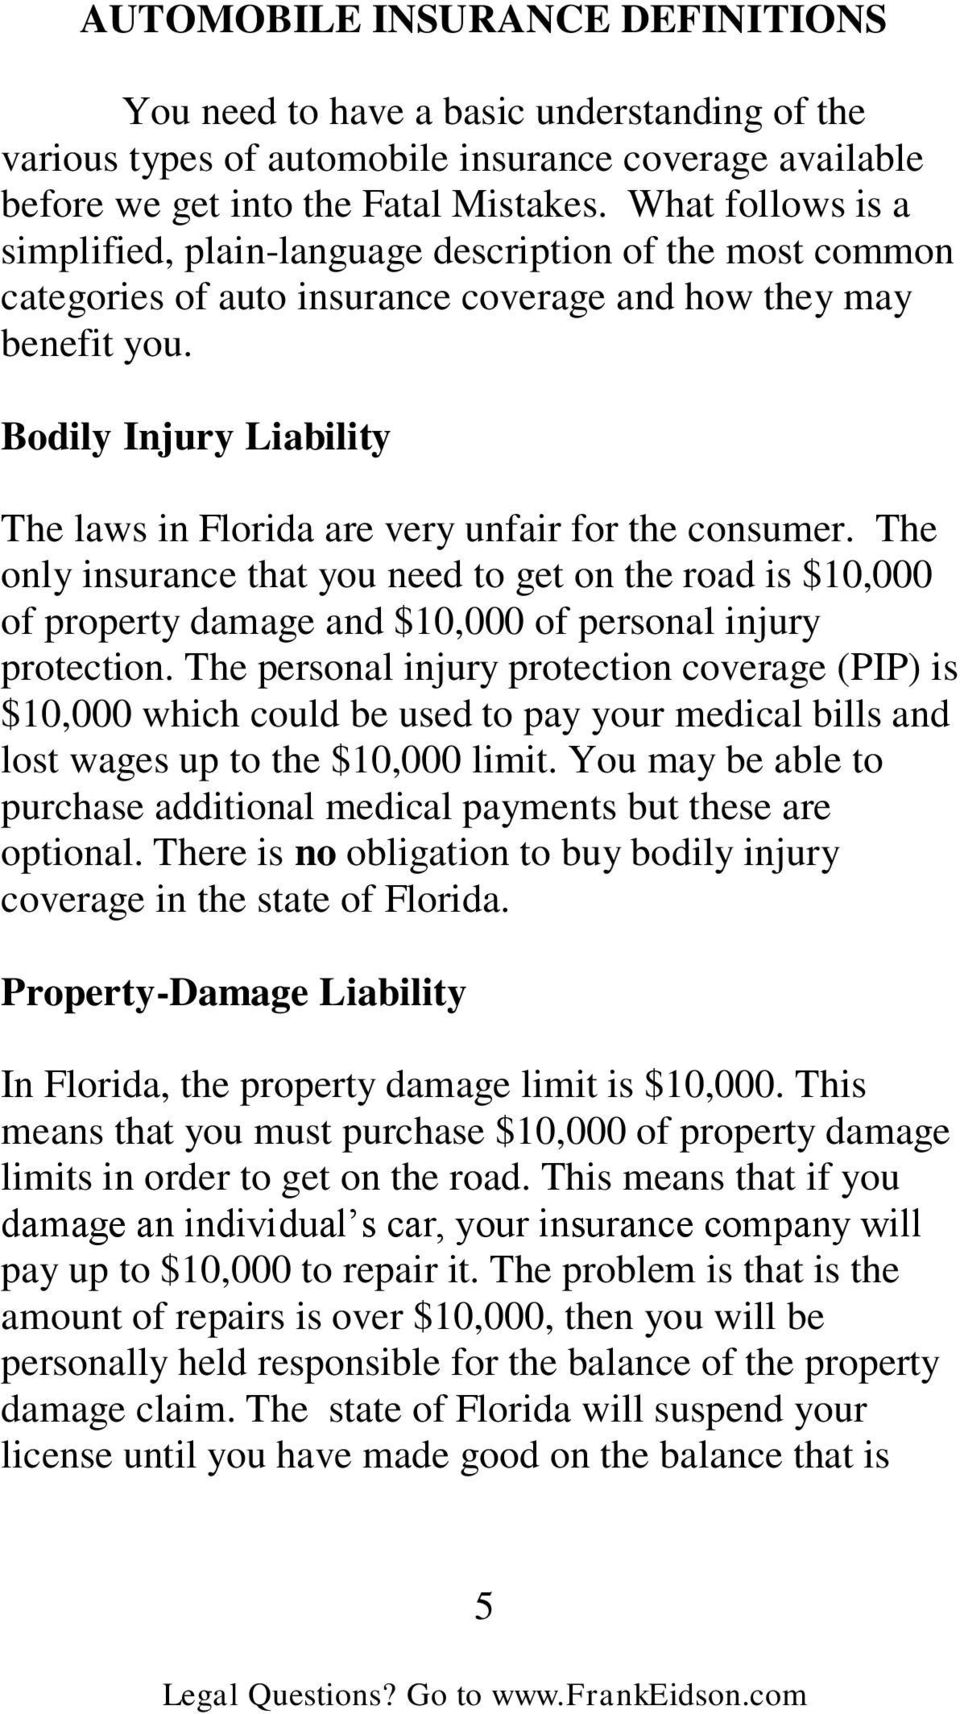 Bodily Injury Liability The laws in Florida are very unfair for the consumer.